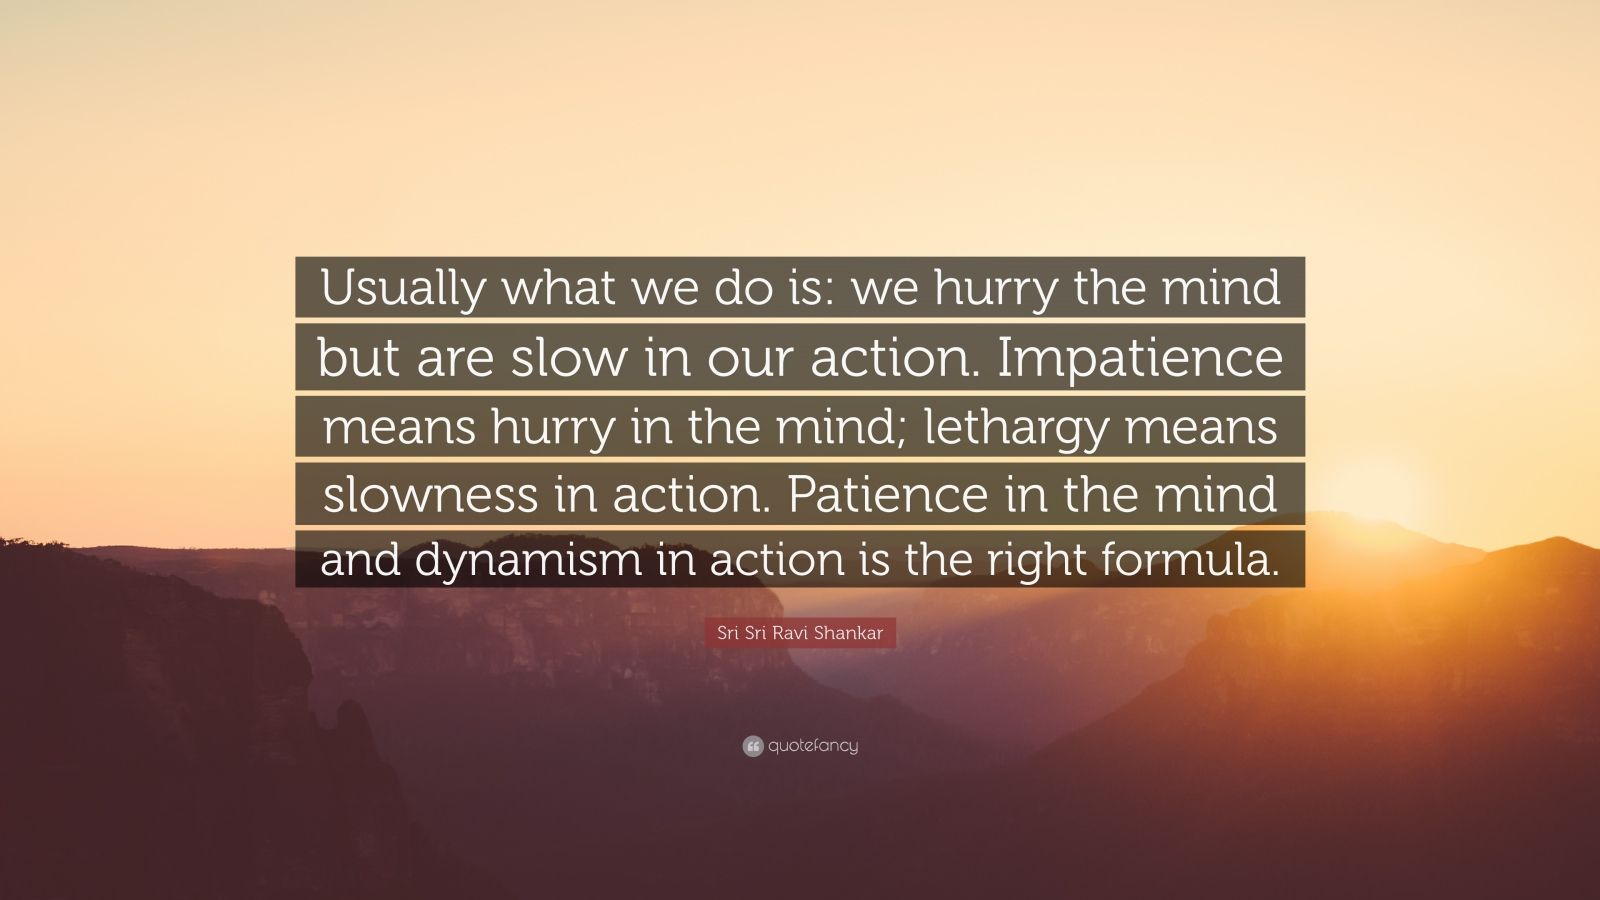 """Sri Sri Ravi Shankar Quote: """"Usually what we do is: we hurry the mind but are slow in our action. Impatience means hurry in the mind; lethargy means slowness in action. Patience in the mind and dynamism in action is the right formula."""""""